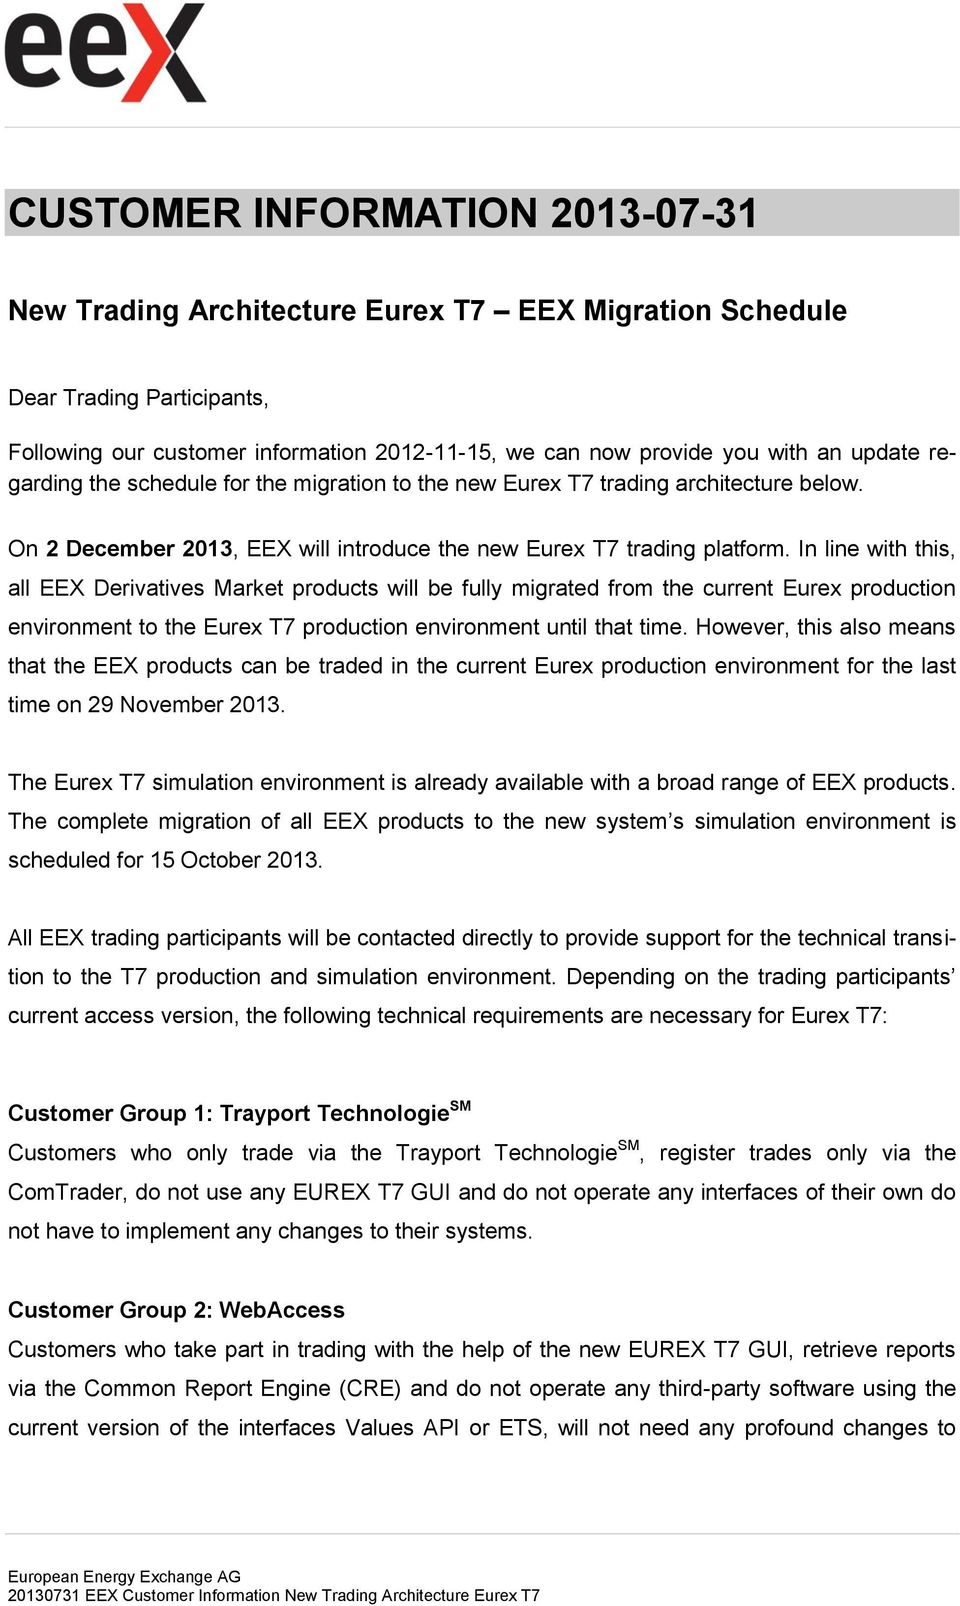 In line with this, all EEX Derivatives Market products will be fully migrated from the current Eurex production environment to the Eurex T7 production environment until that time.